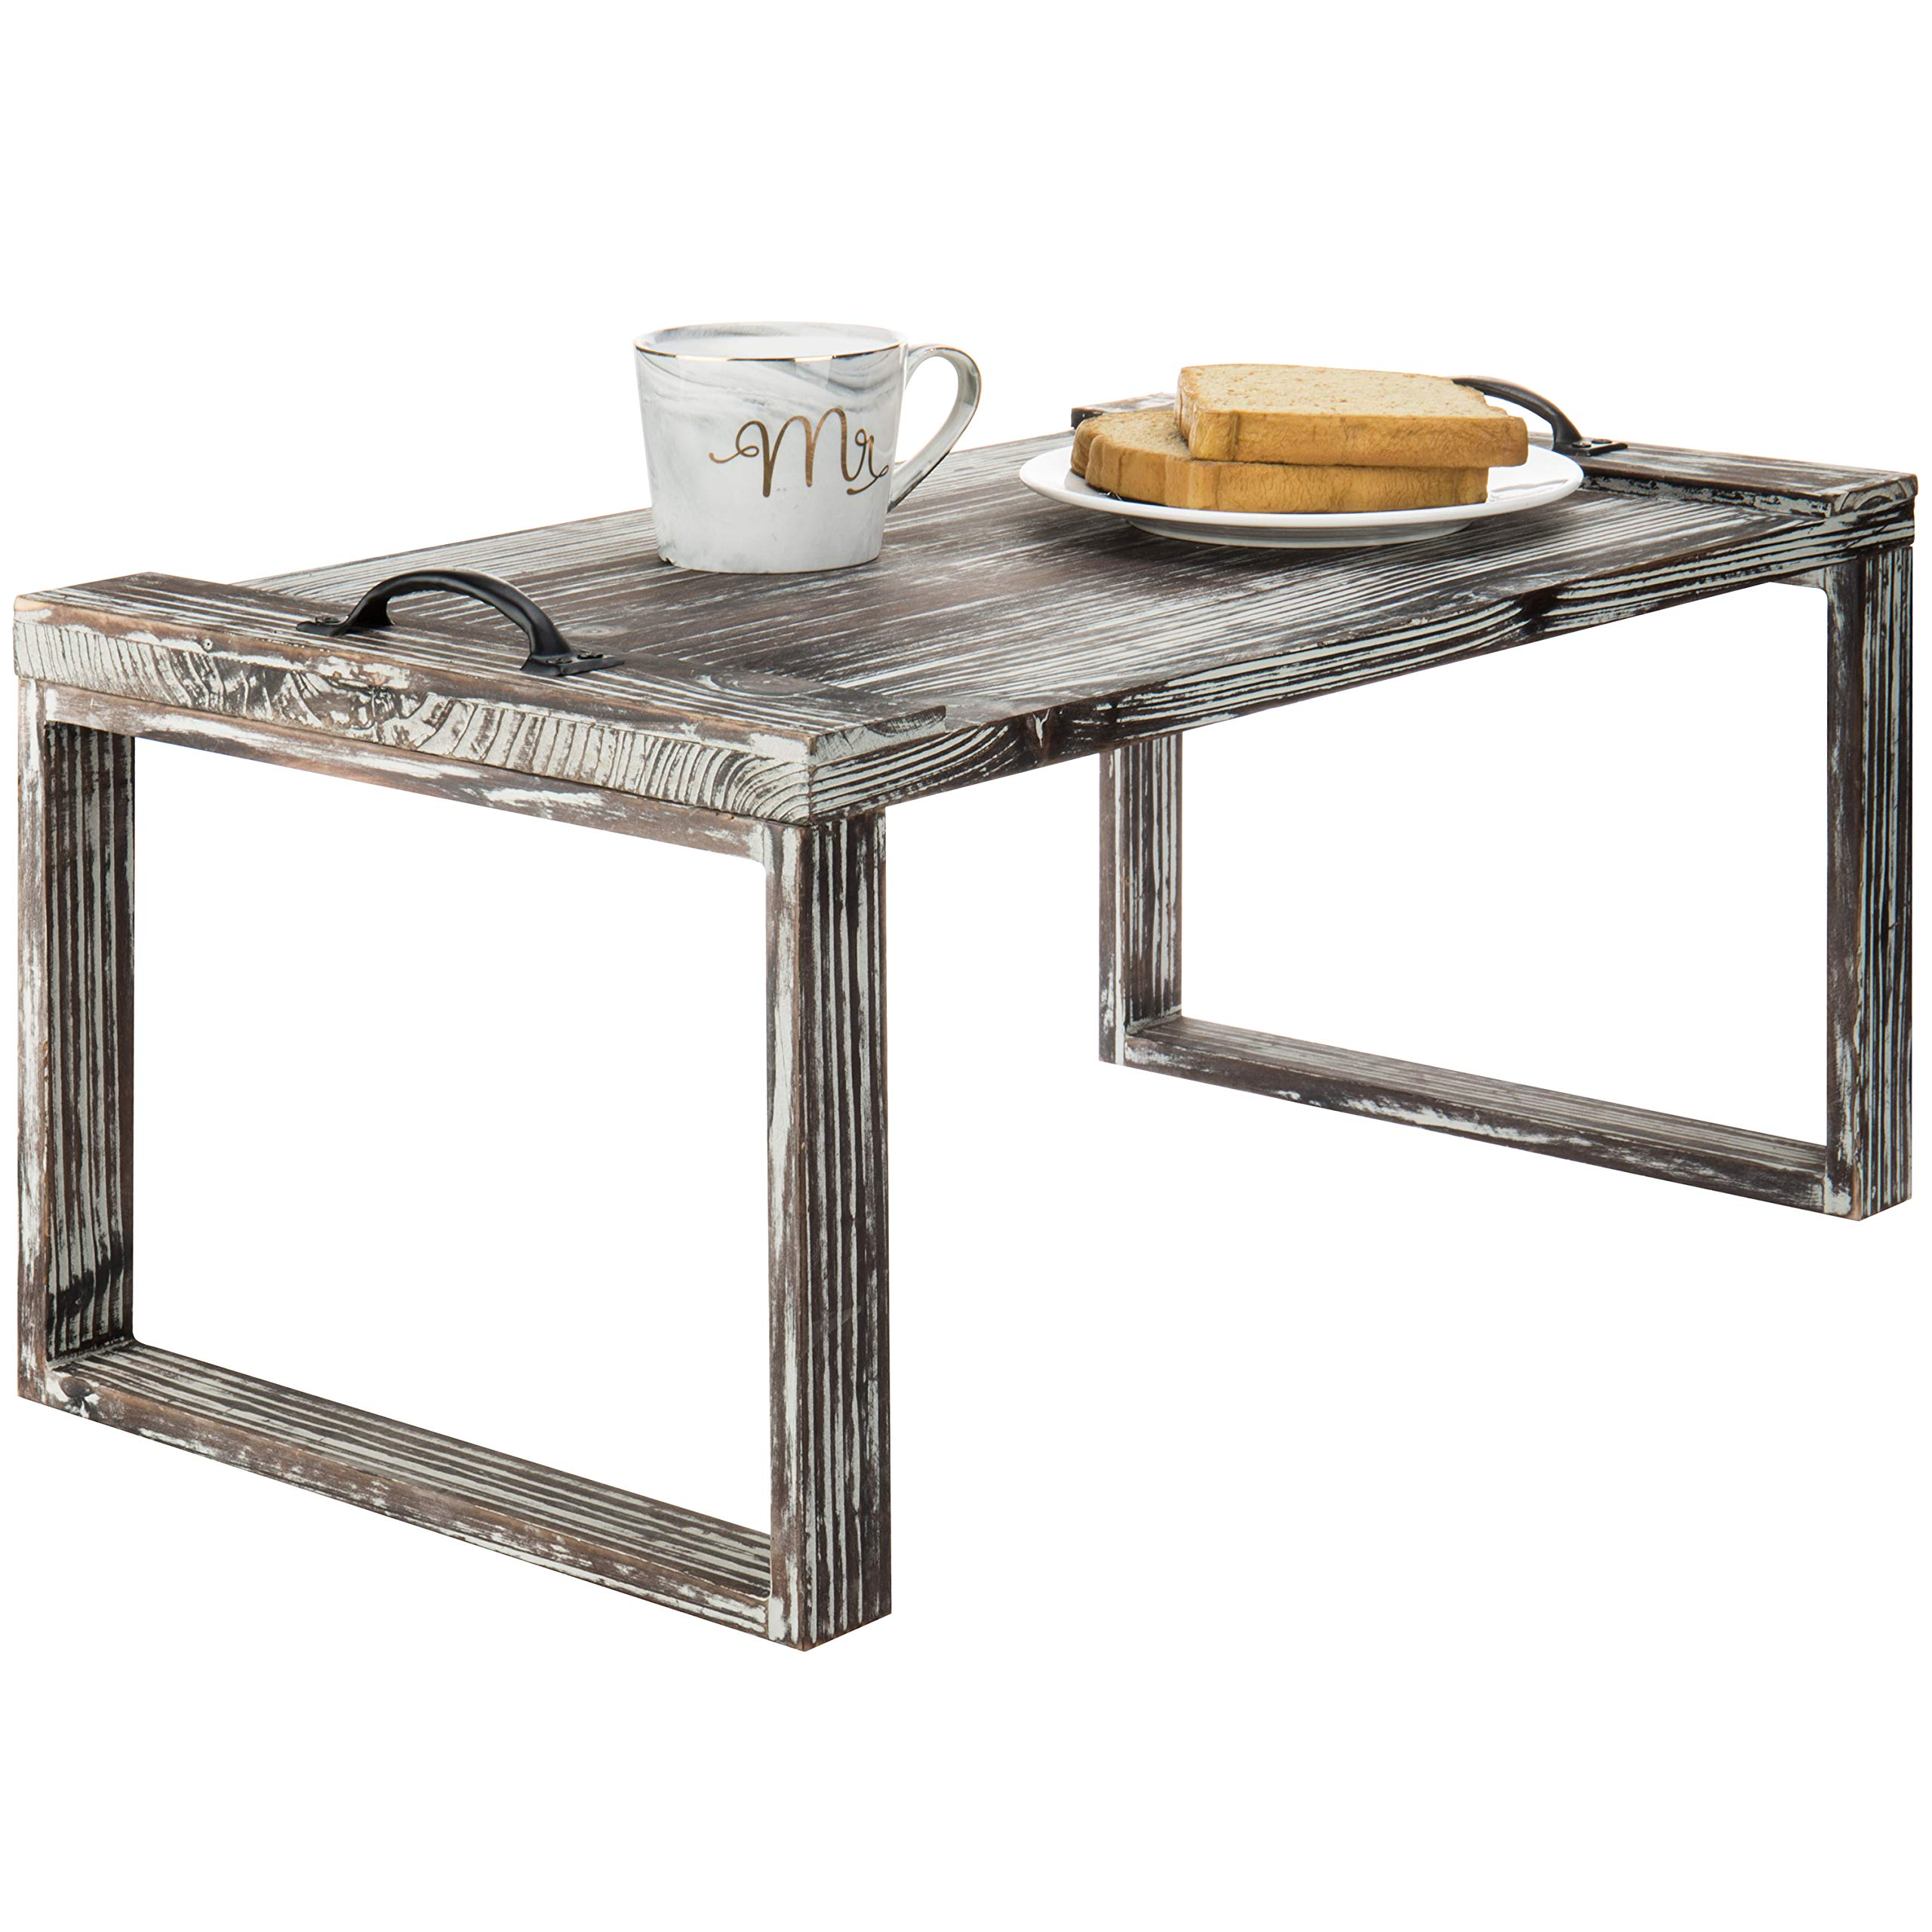 MyGift Rustic Torched Wood 24-inch Breakfast Tray with Legs/Lap Desk